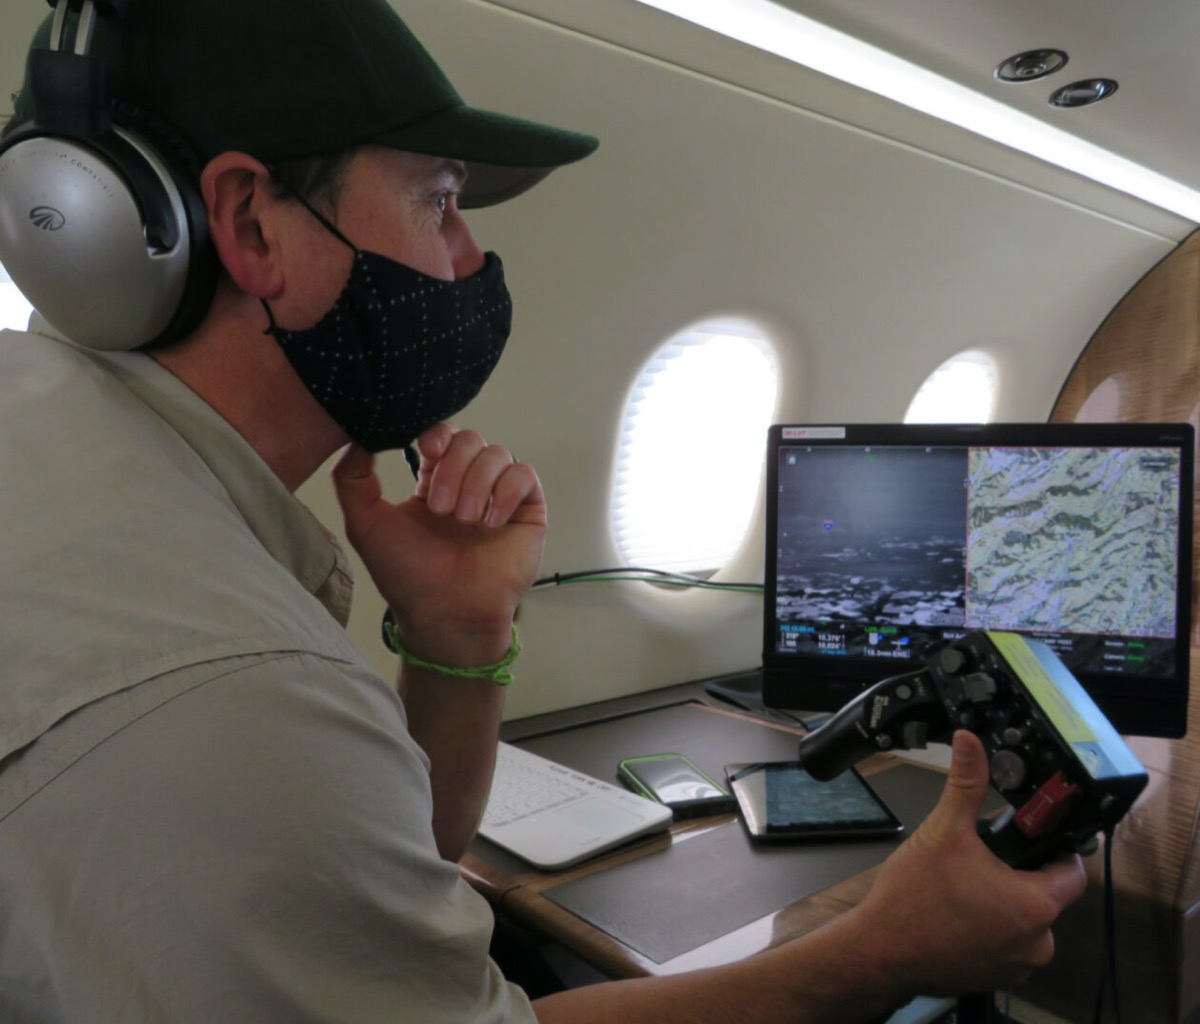 a man wearing a face mask holds a video game-like remote control and looks at a computer screen of maps. he's inside of a plane cabin